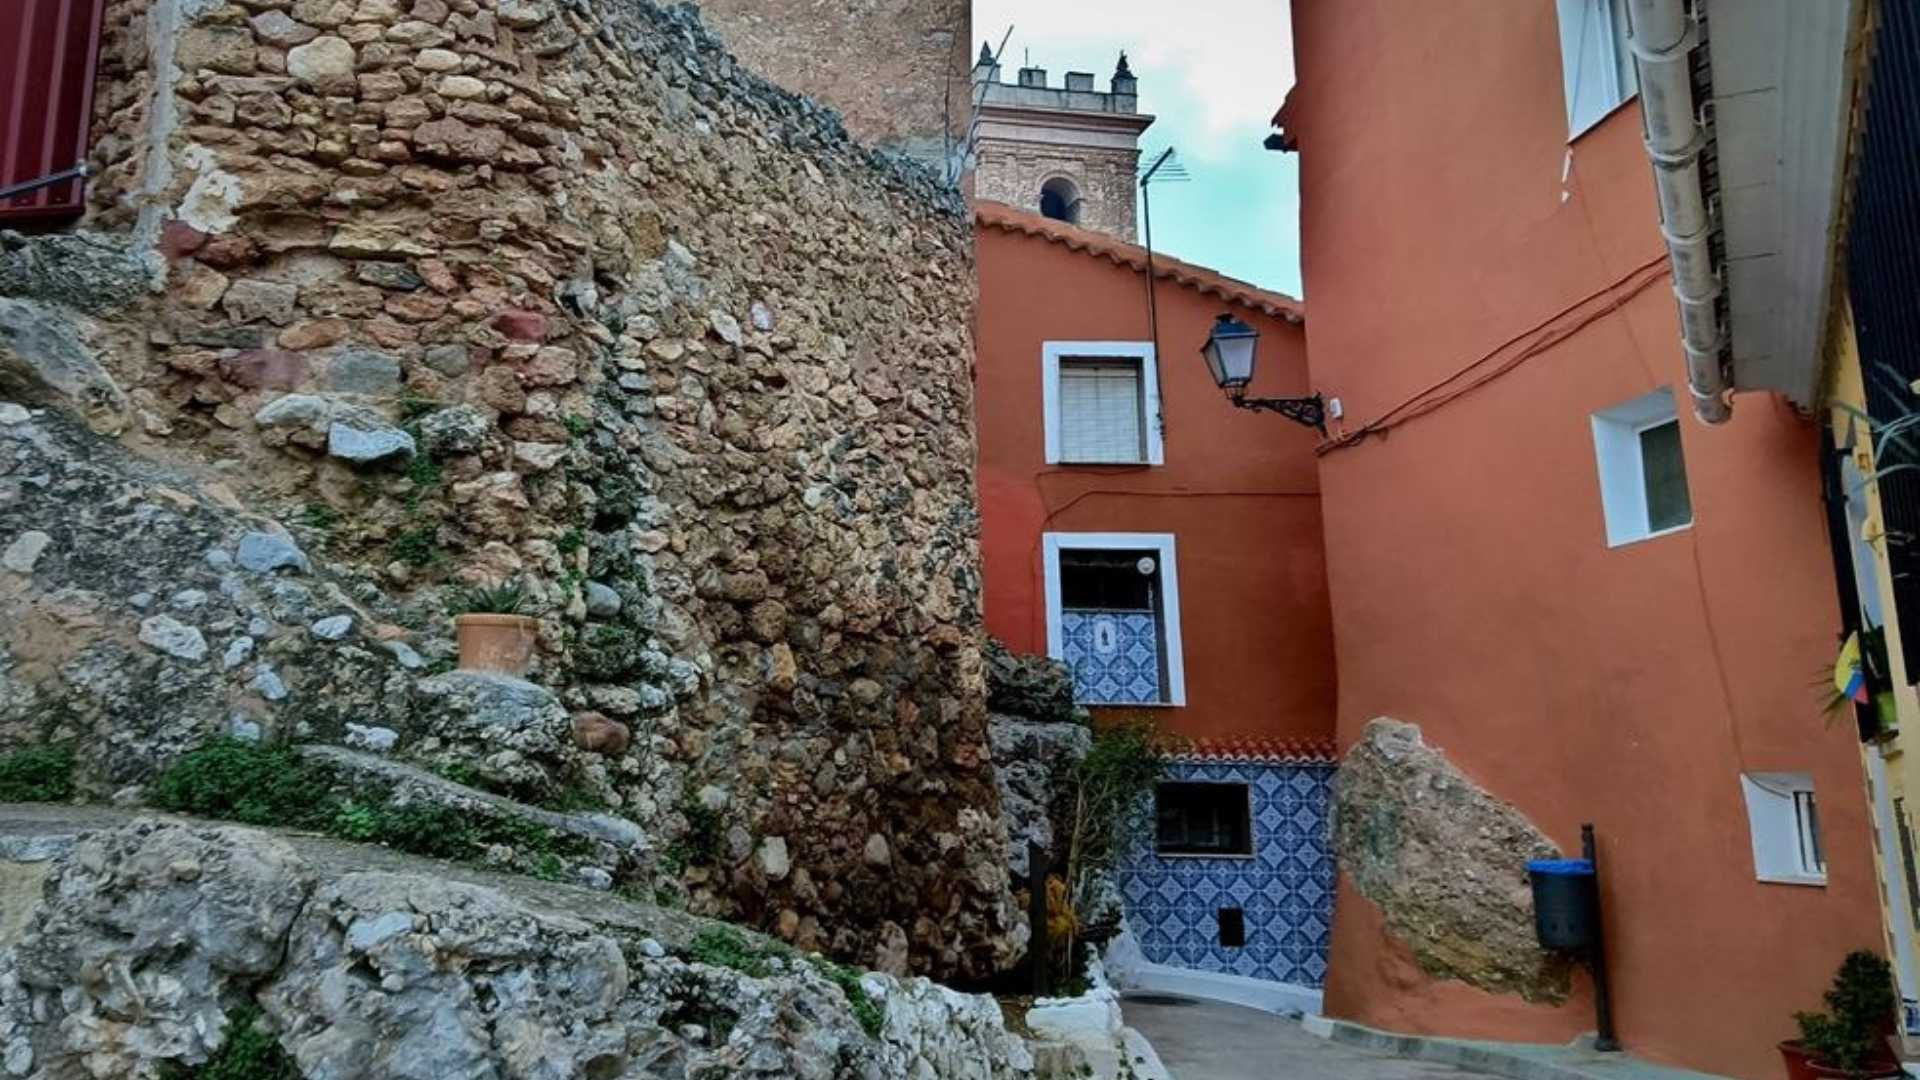 CULTURAL AND HISTORIC TOUR OF CALLES